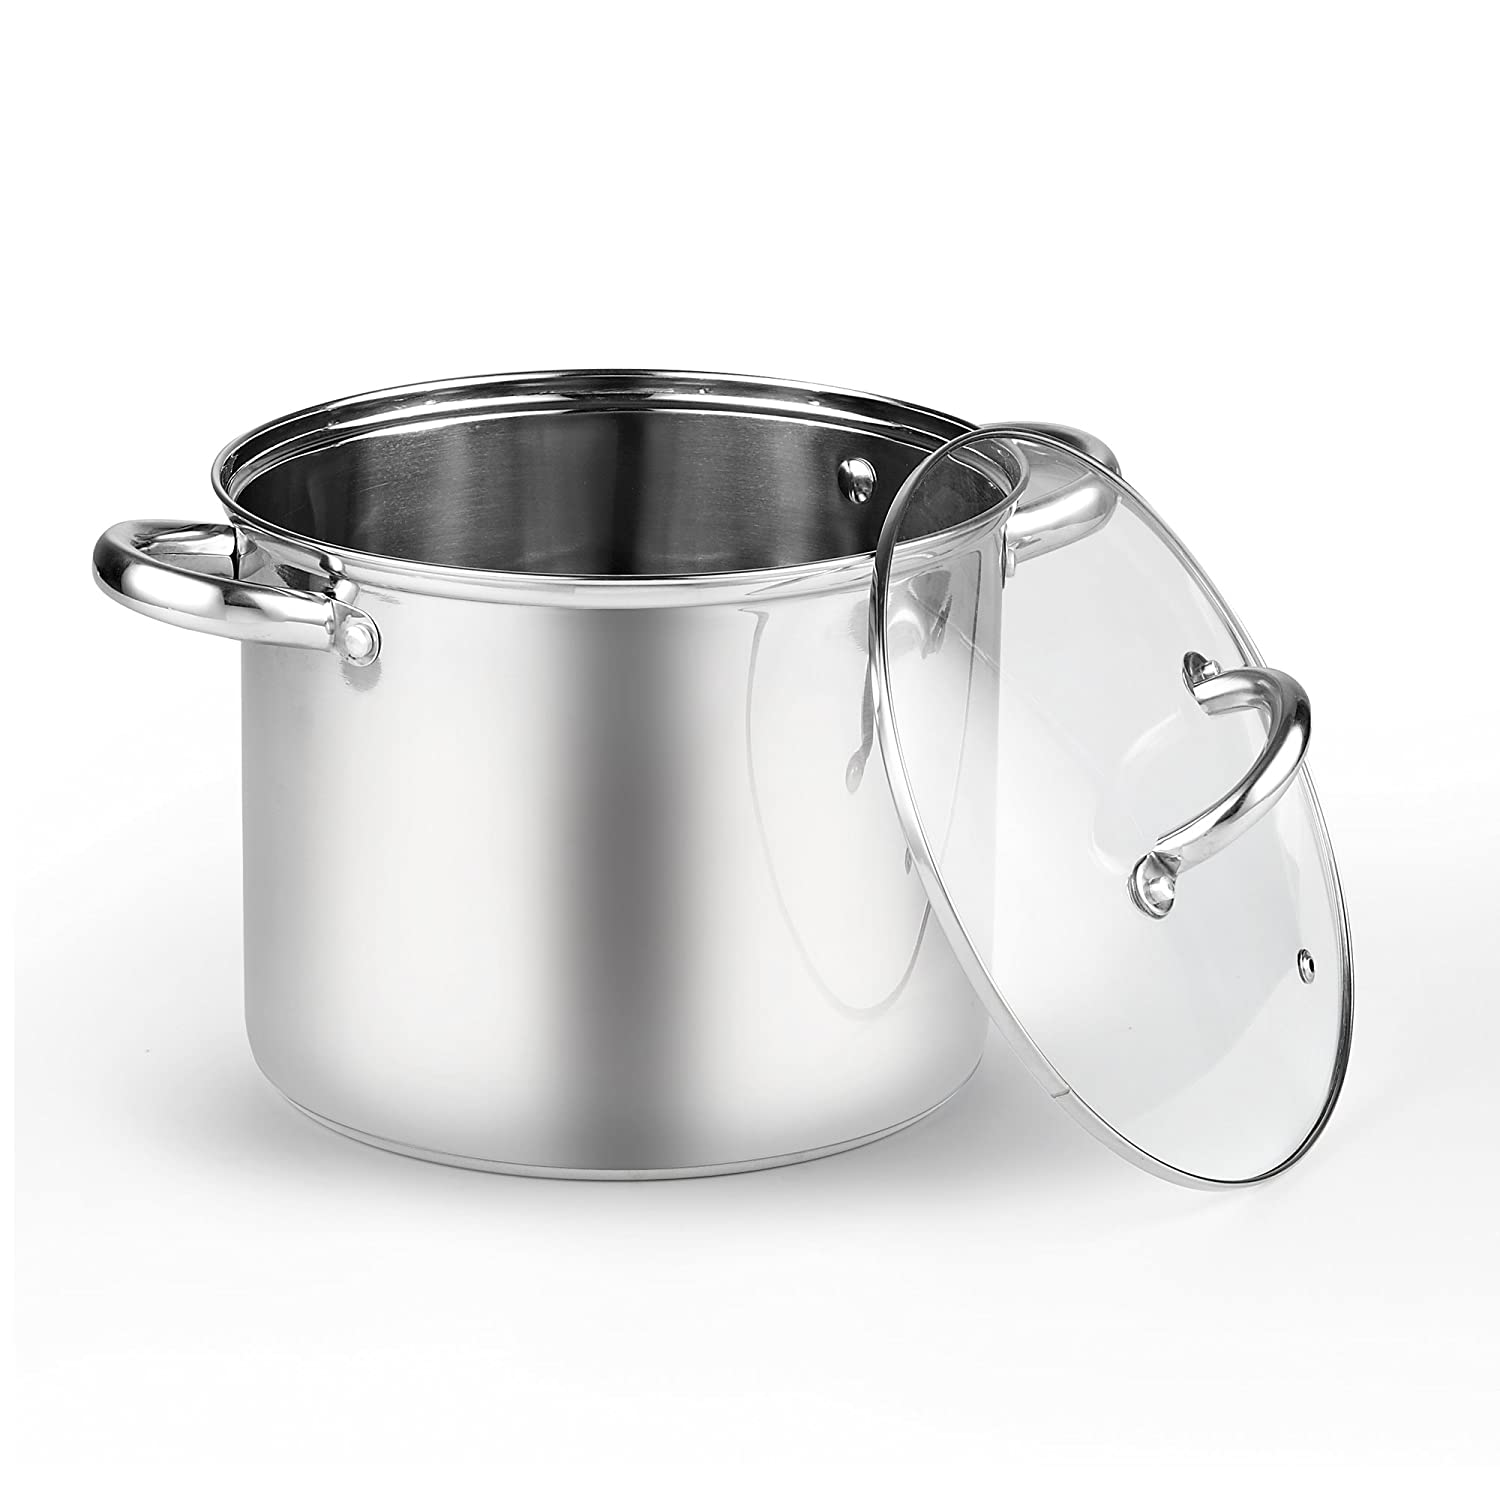 Cook N Home 2480 Stockpot with Lid, 6.5 quart, Stainless